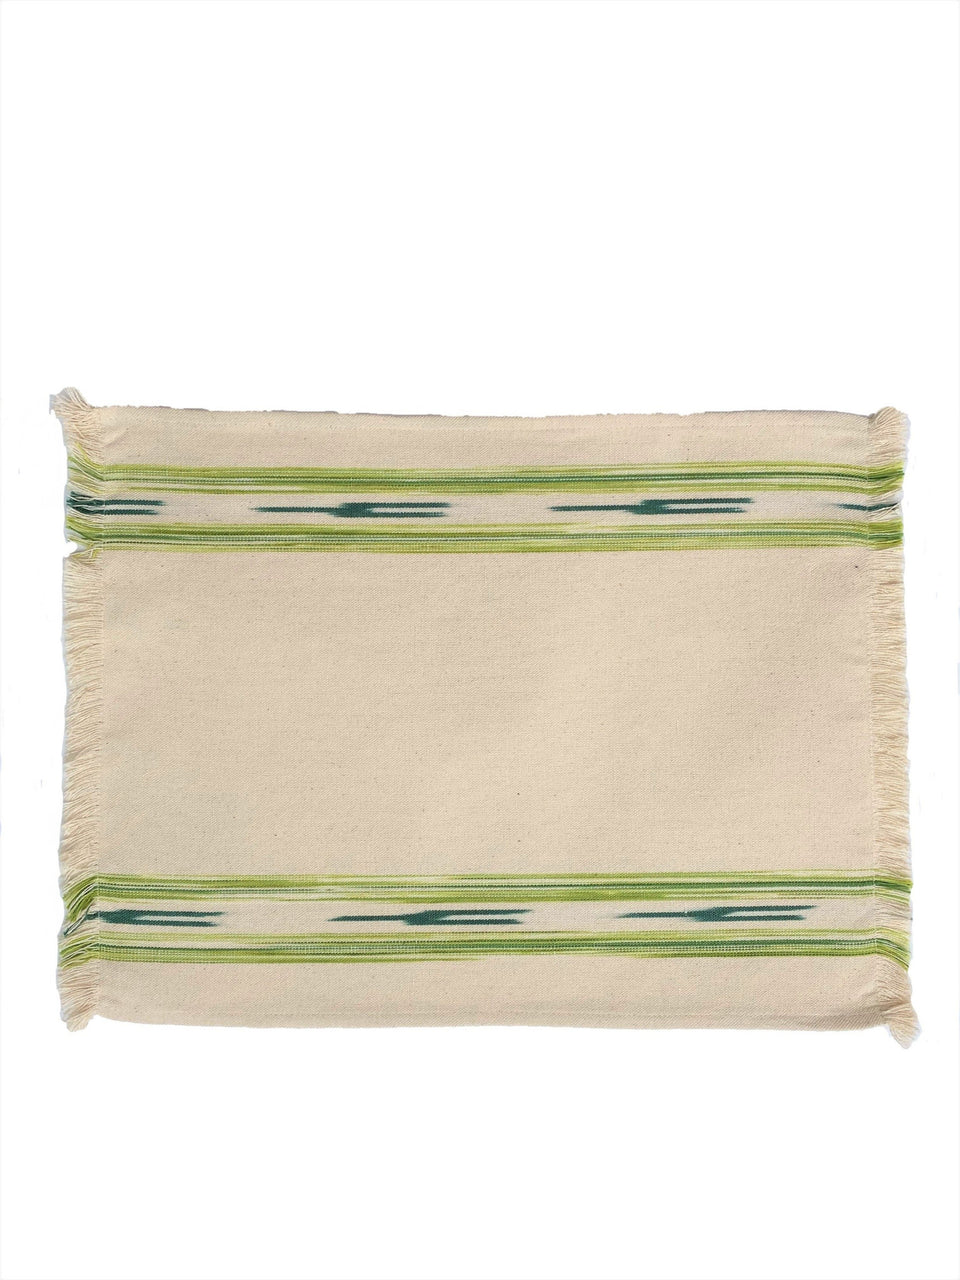 Cream fabric placemat with green ikat stripe